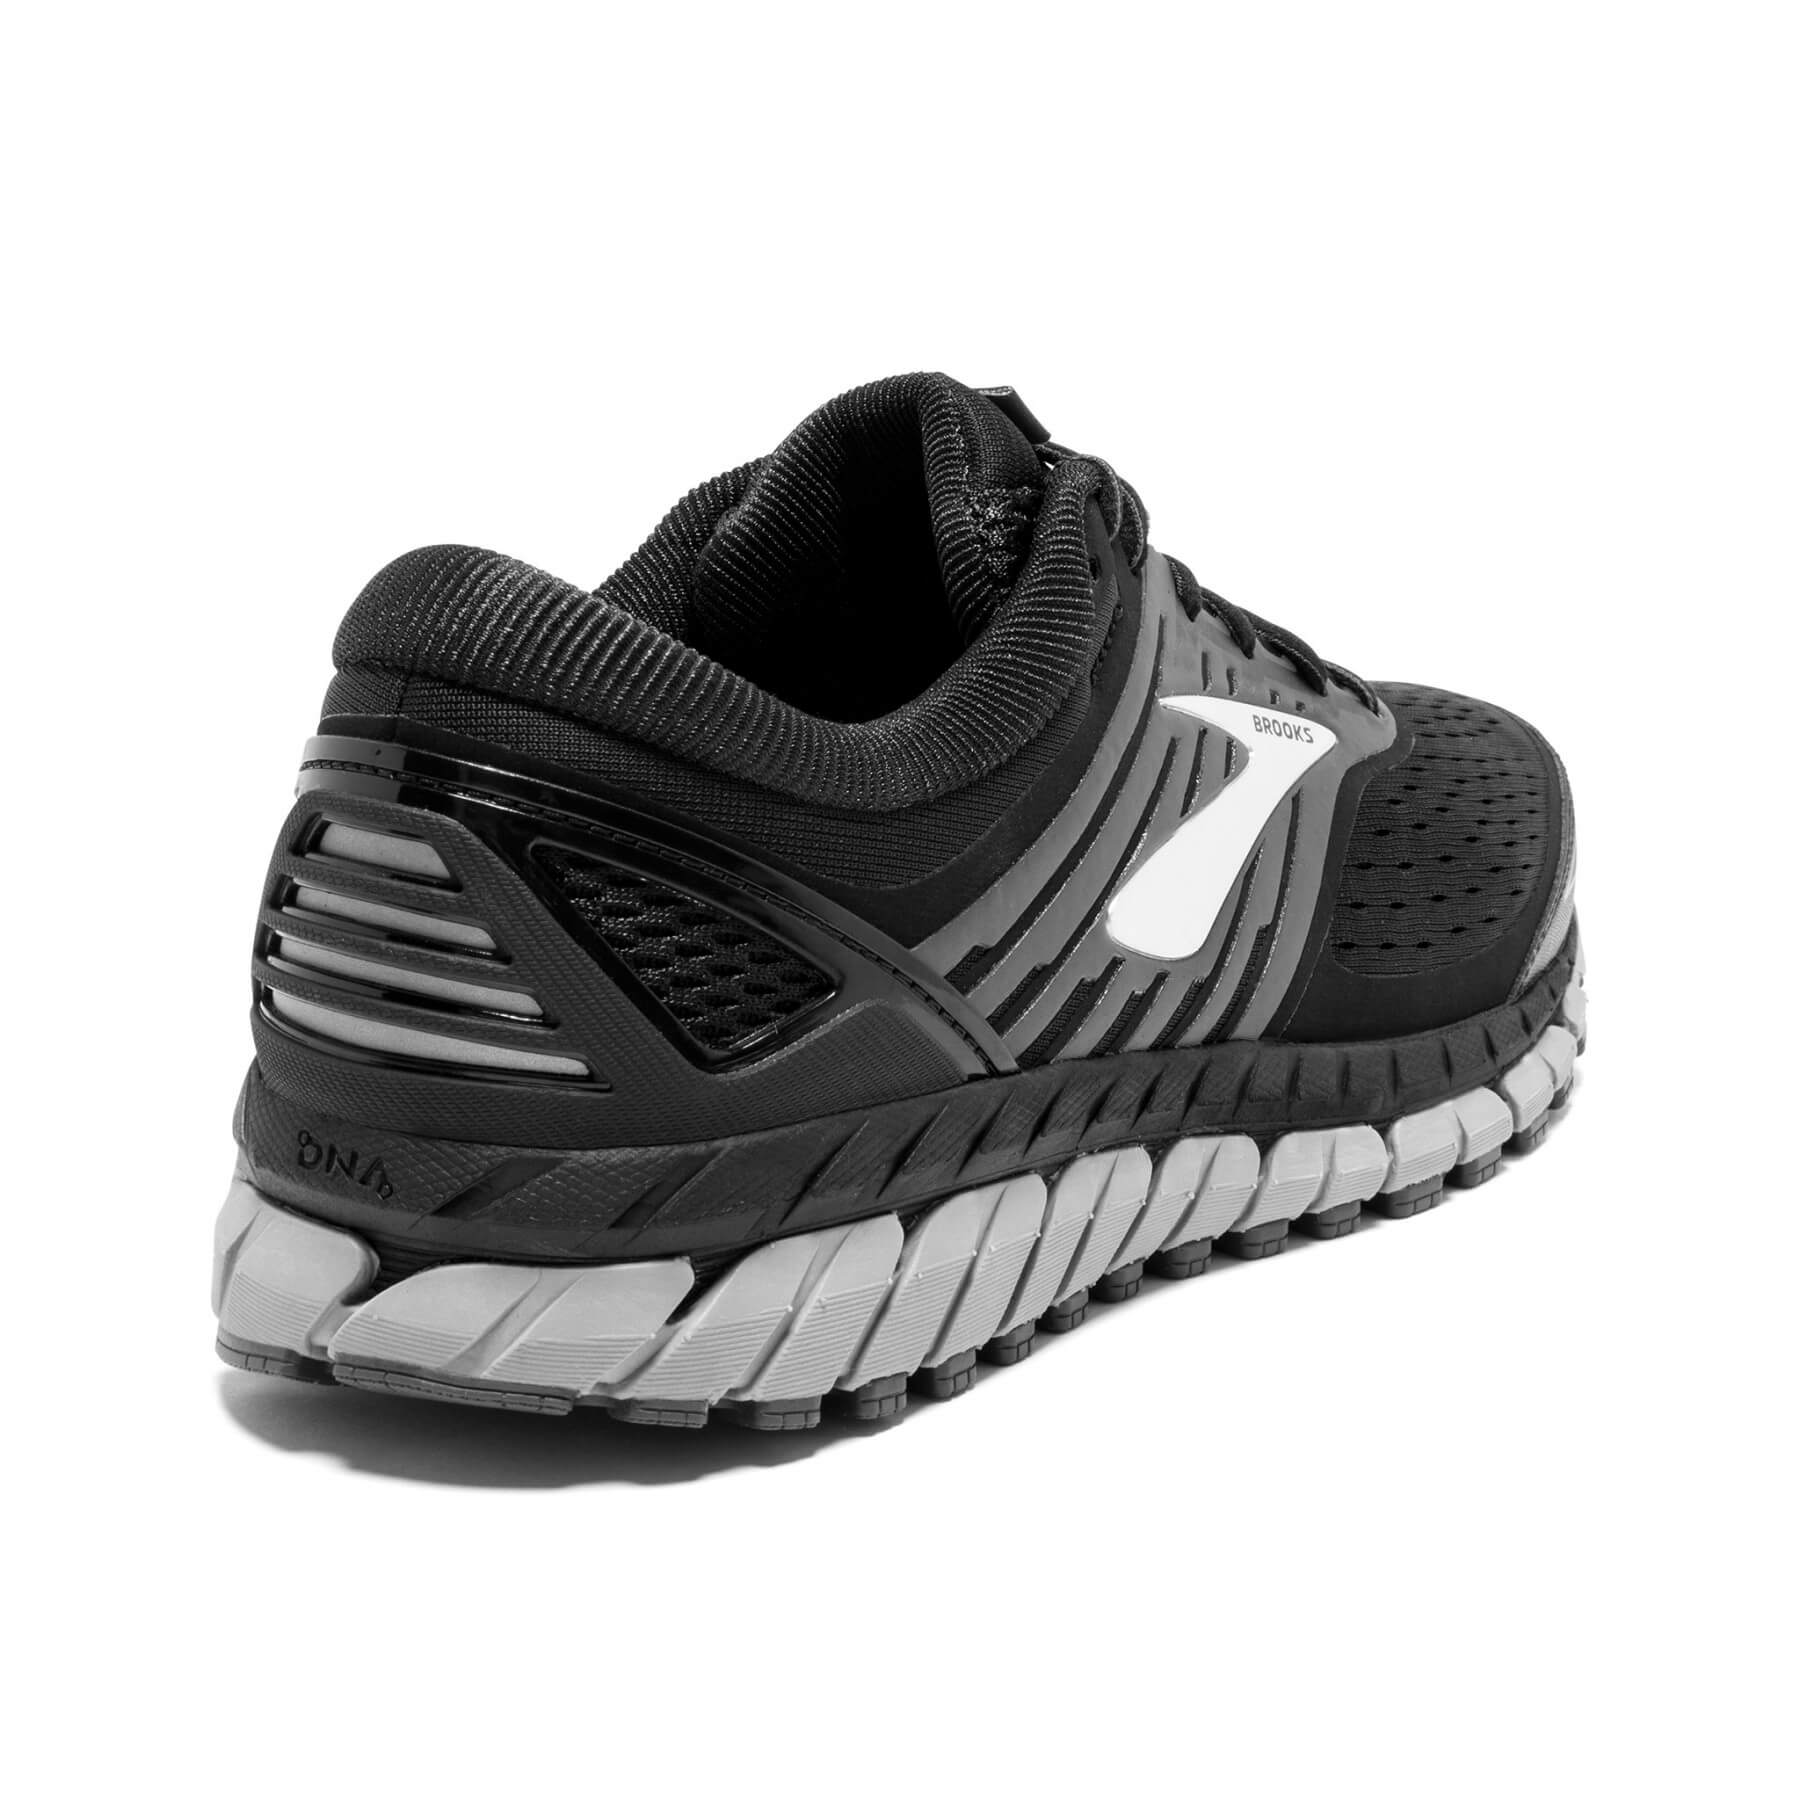 4E GENUINE 004 Brooks Beast 18 Mens Running Shoes